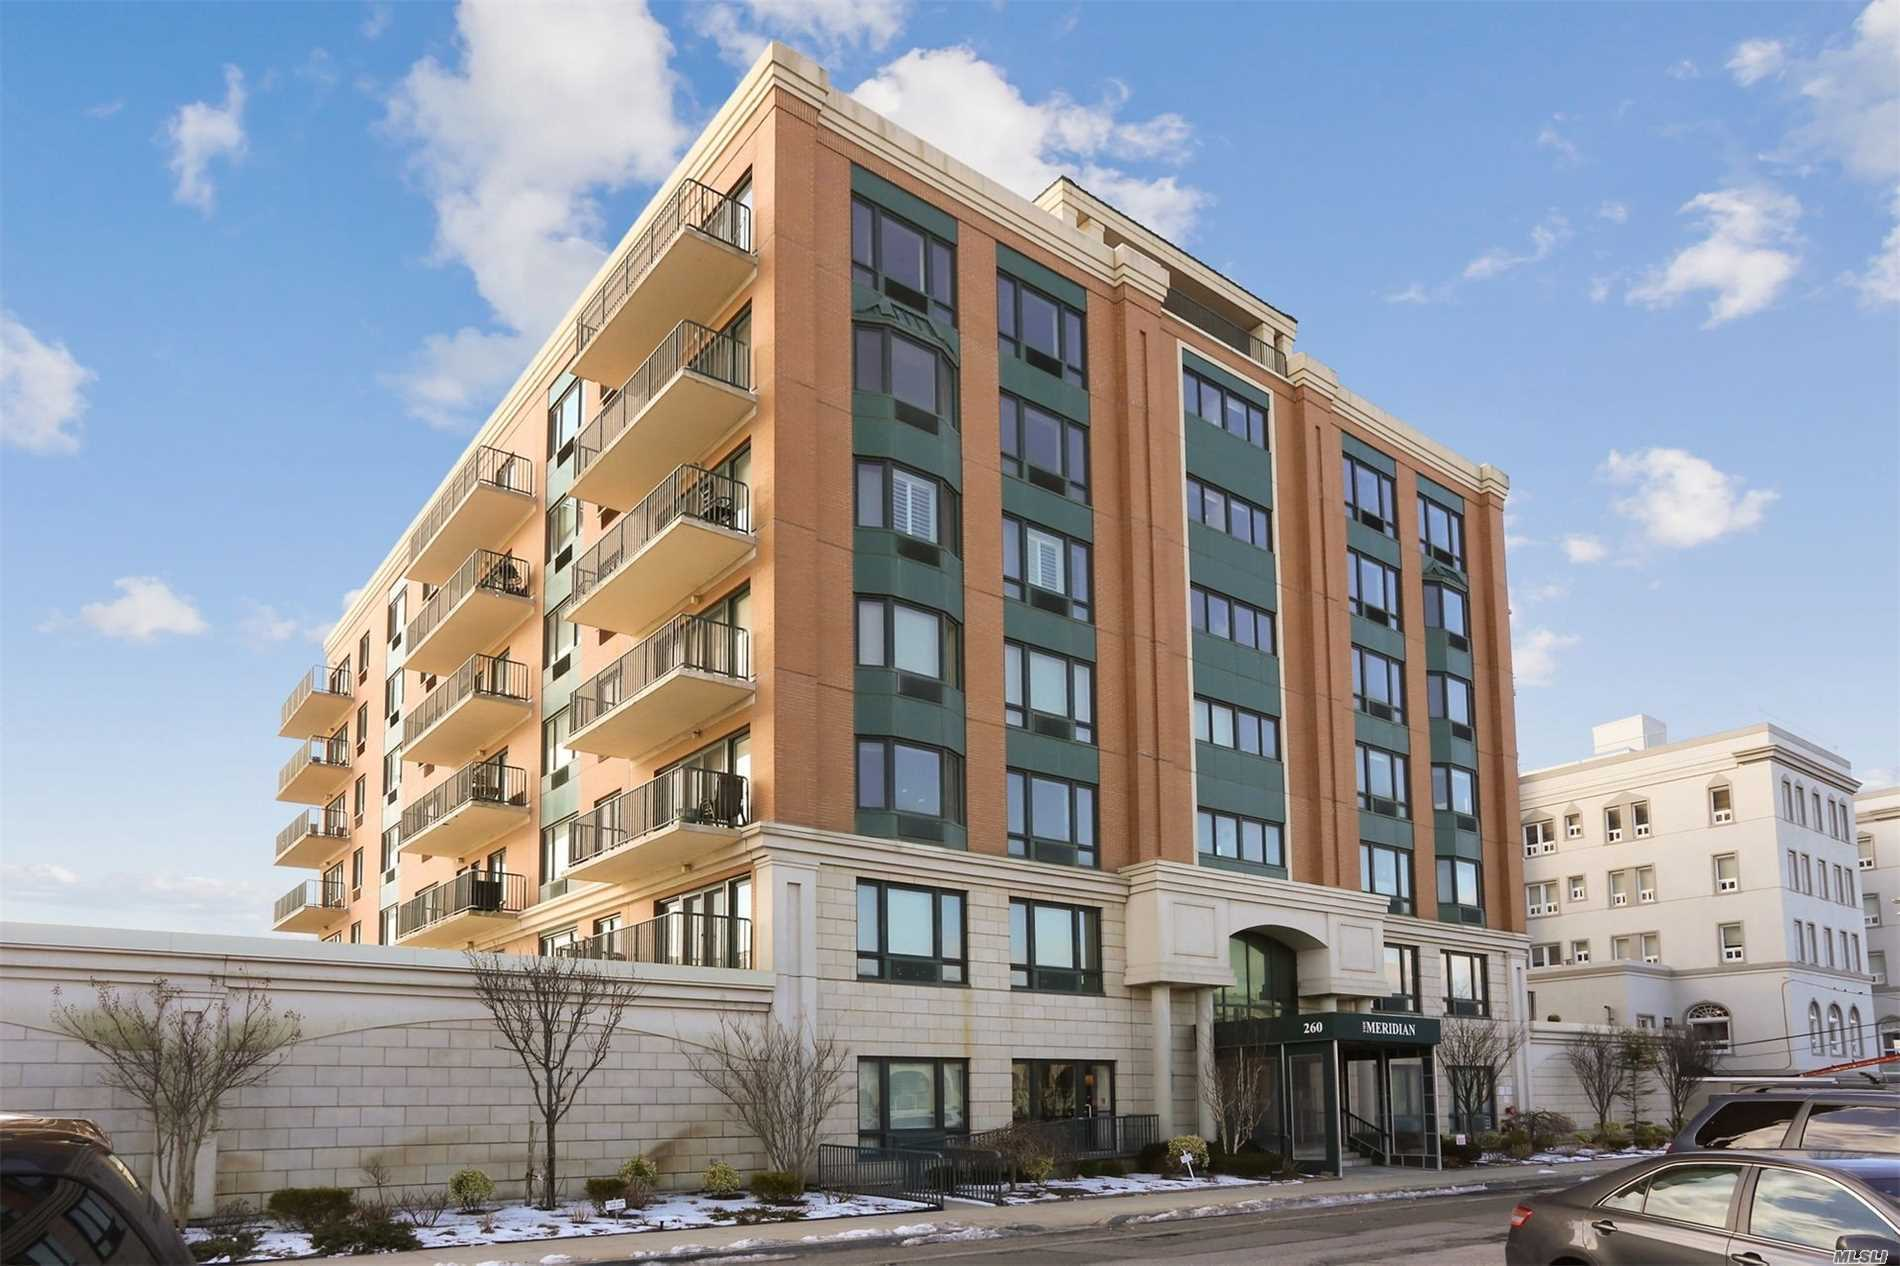 Property for sale at 260 W Broadway, Long Beach NY 11561, Long Beach,  New York 11561